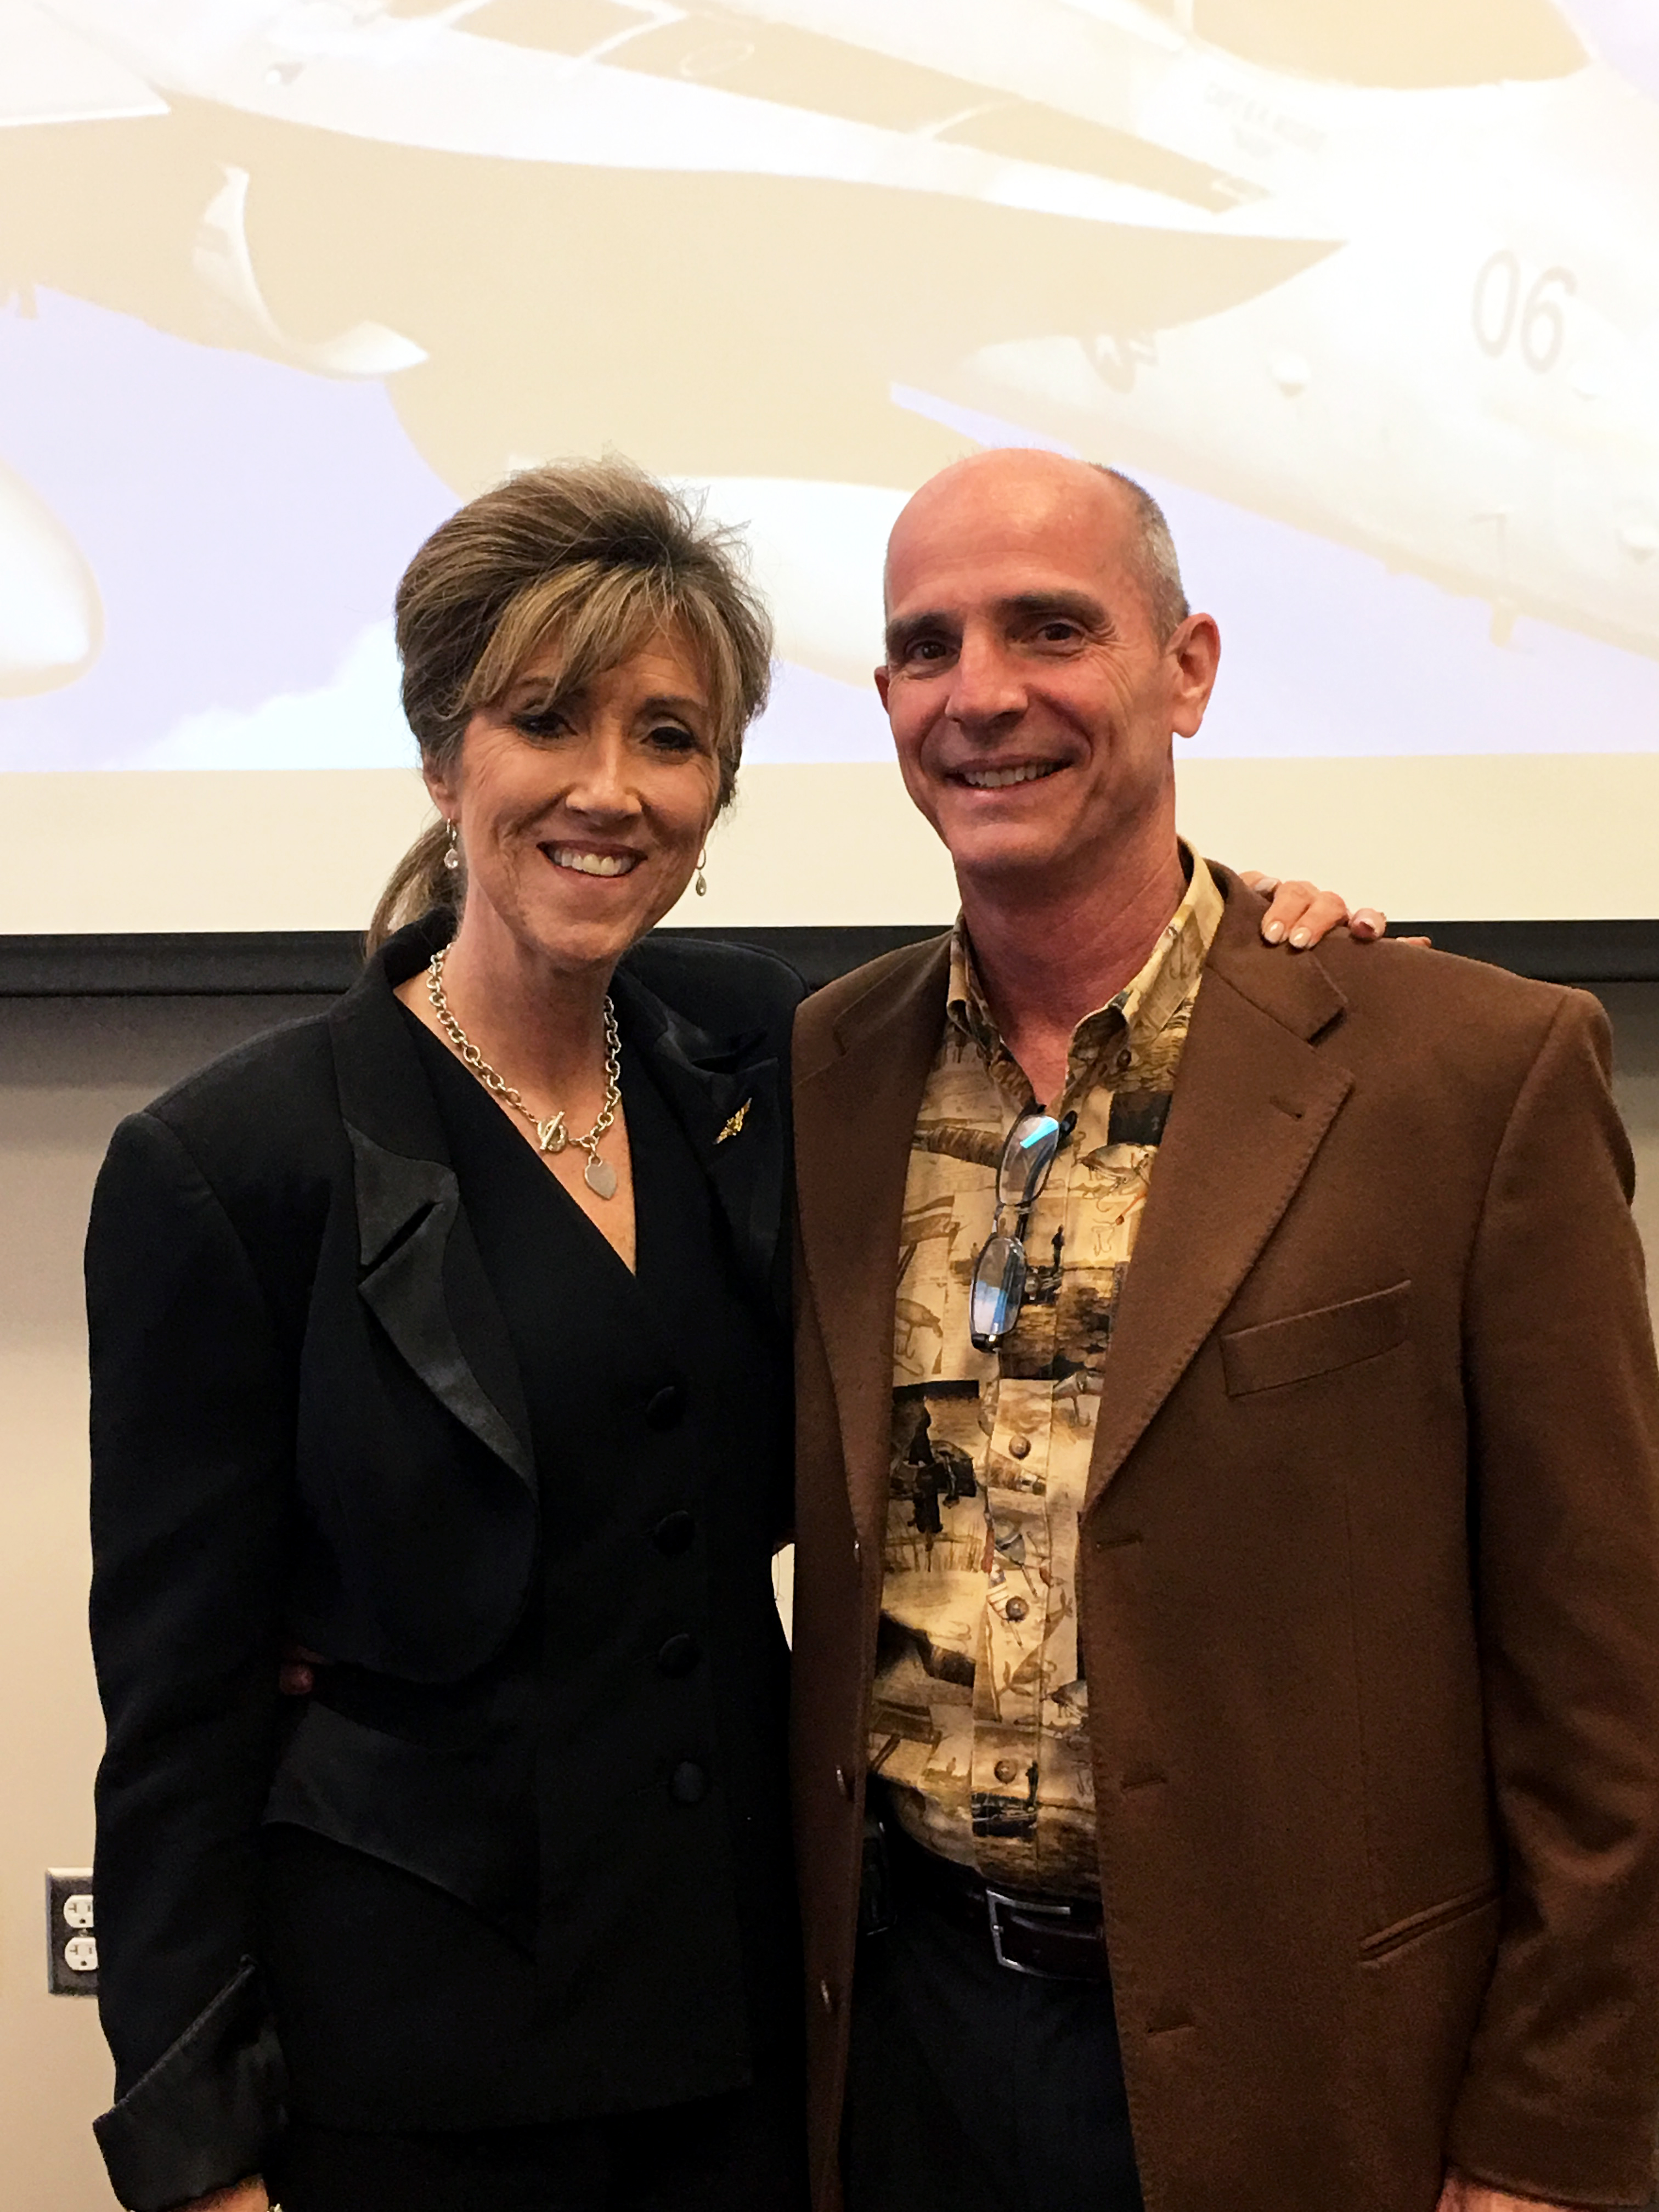 Tammie Jo Shults and her husband Dean Shults pose after she spoke at an event at MidAmerica Nazarene University in March 2017.